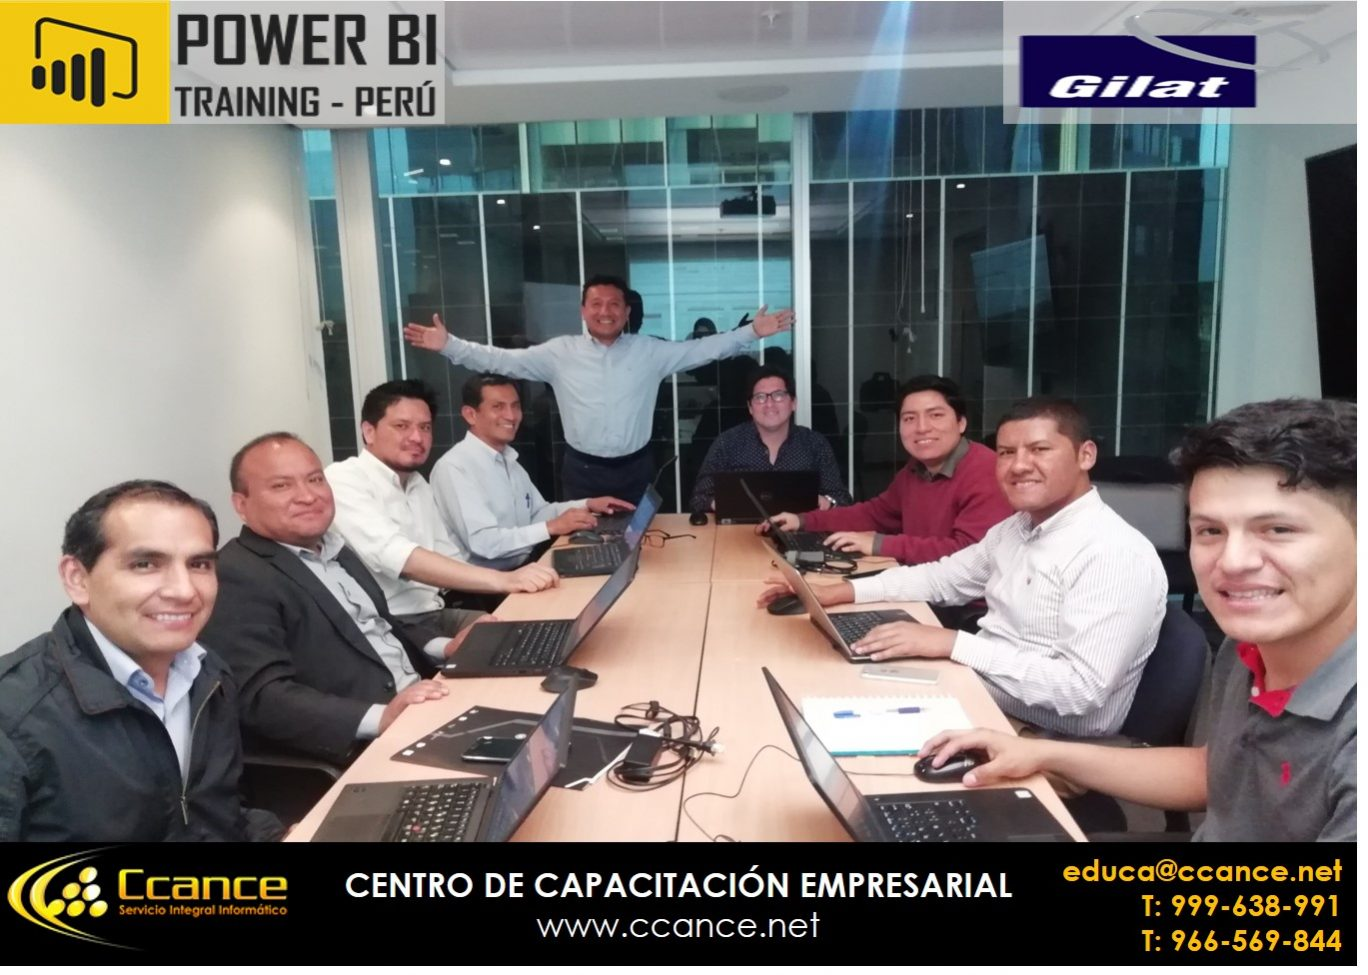 CAPACITACIÓN GILAT – 2019 – POWER BI PERÚ